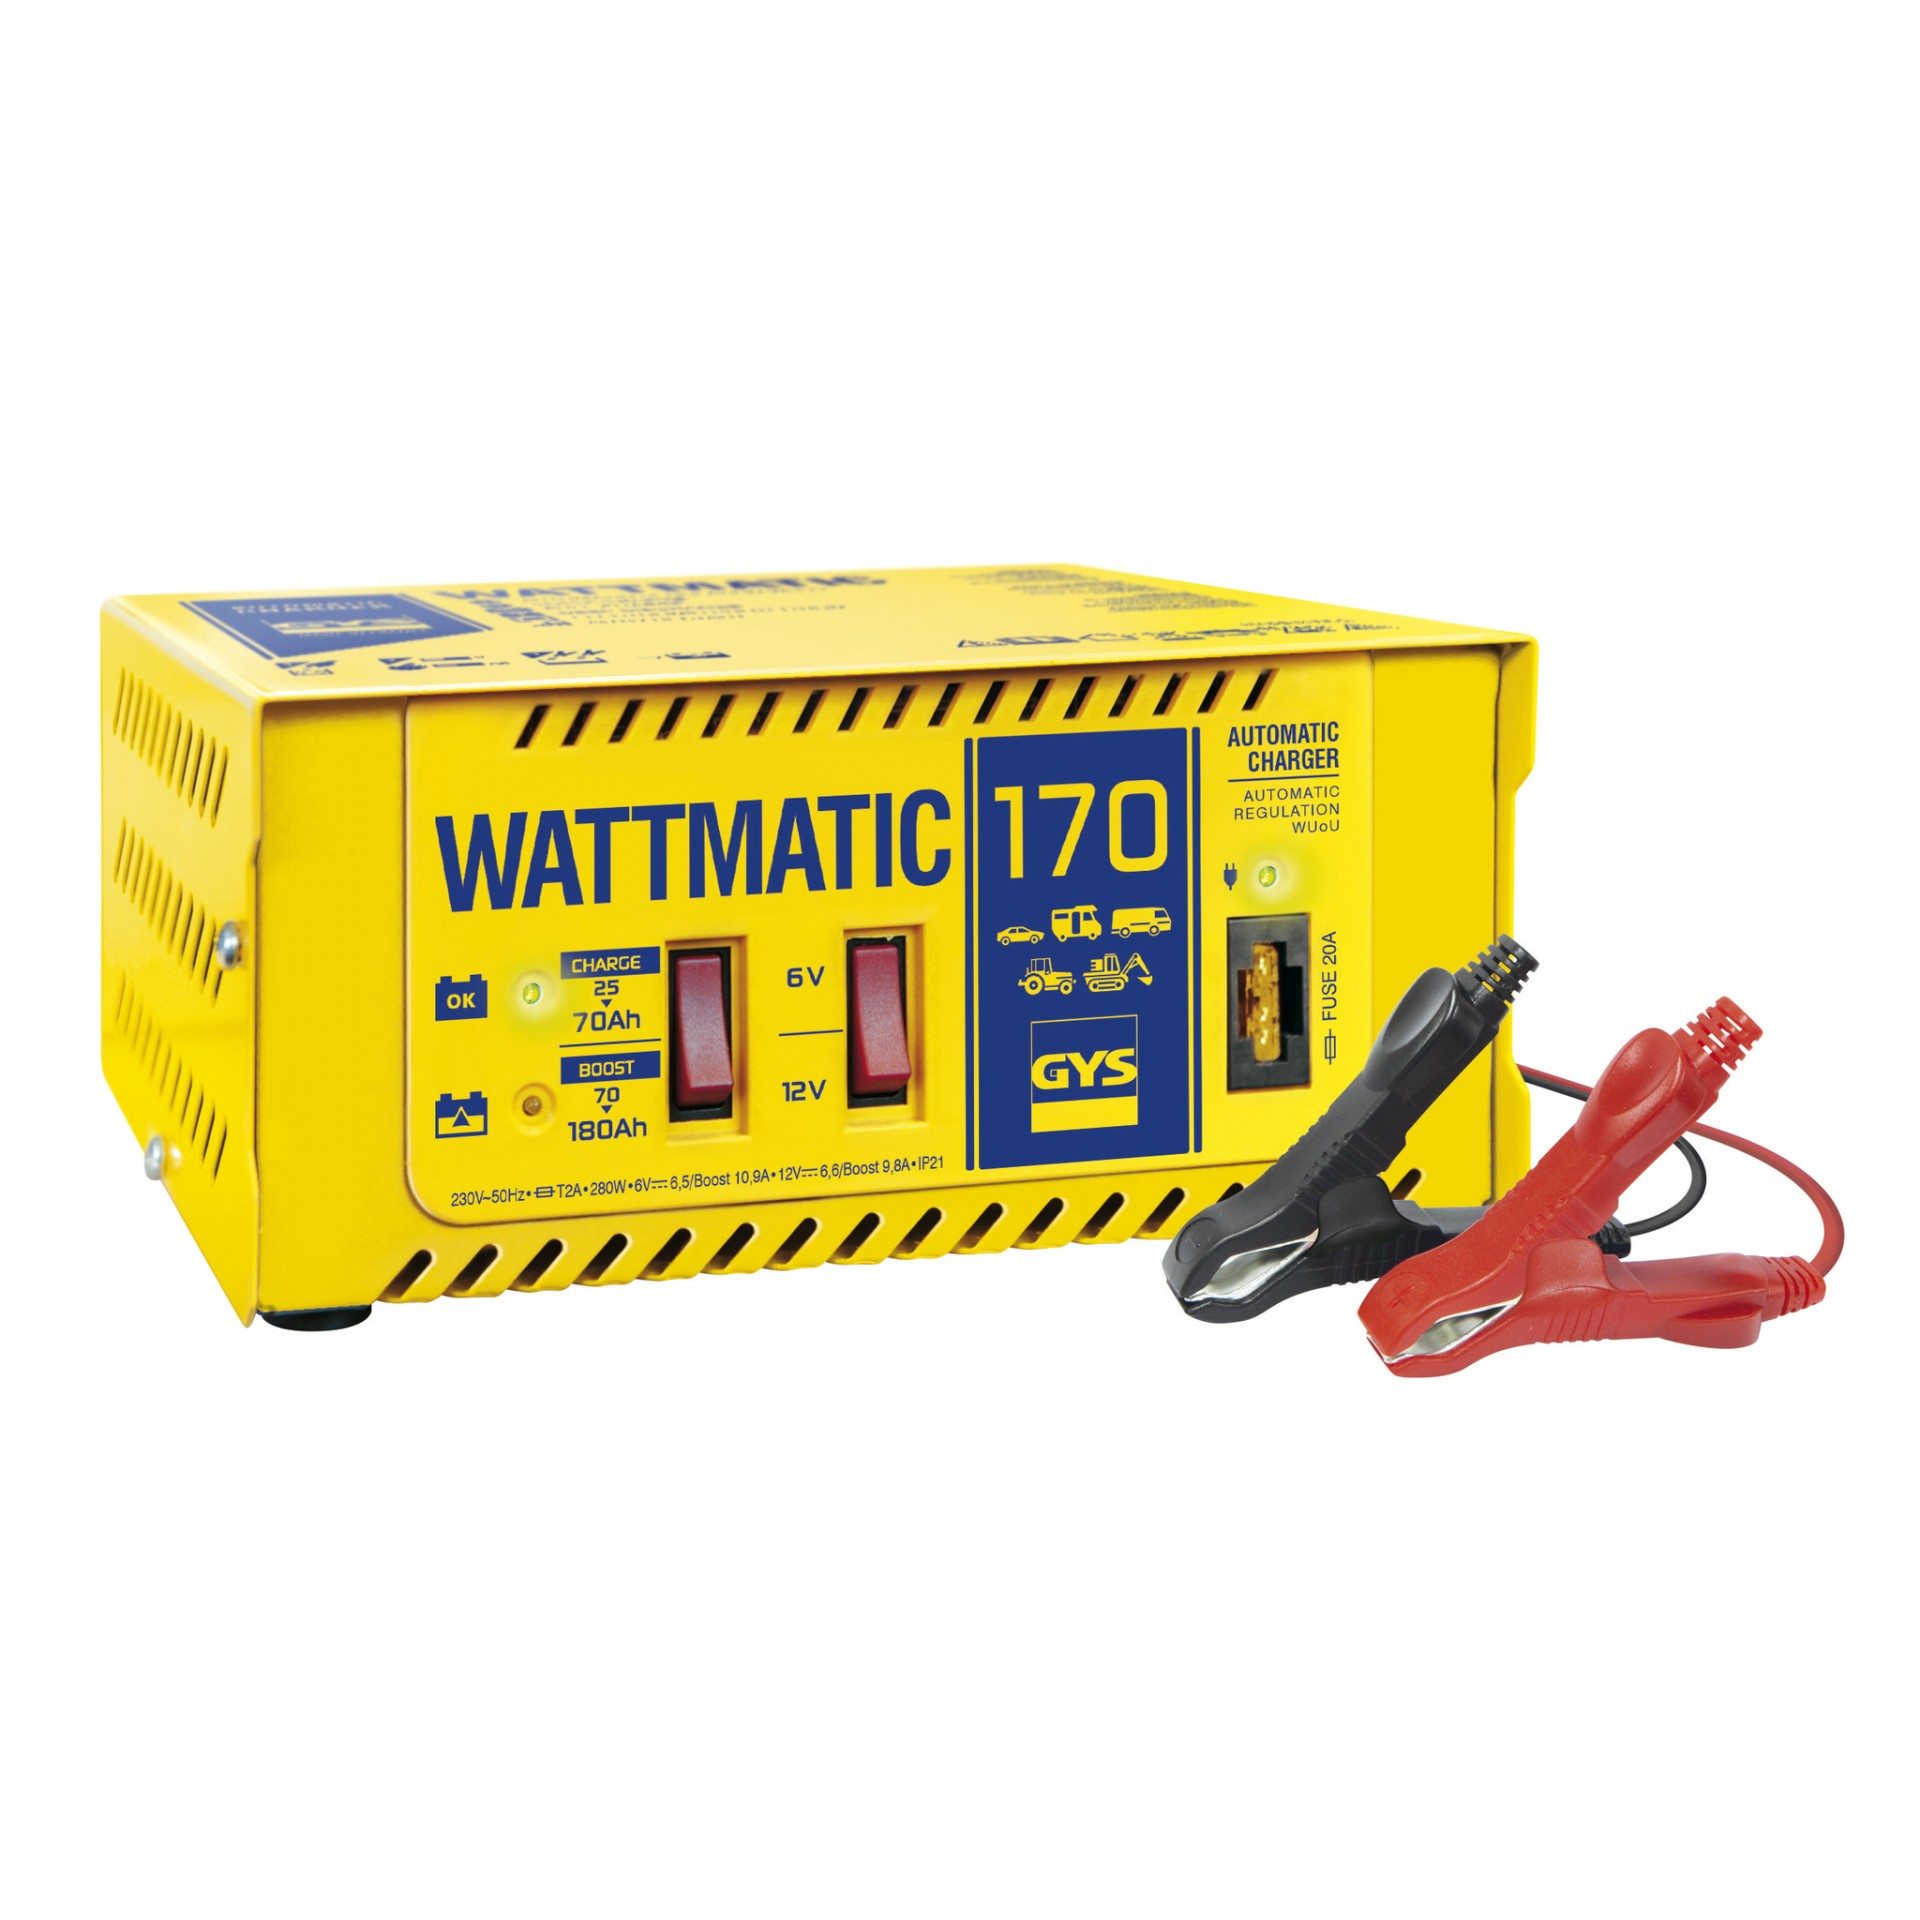 Carregador WATTMATIC 170